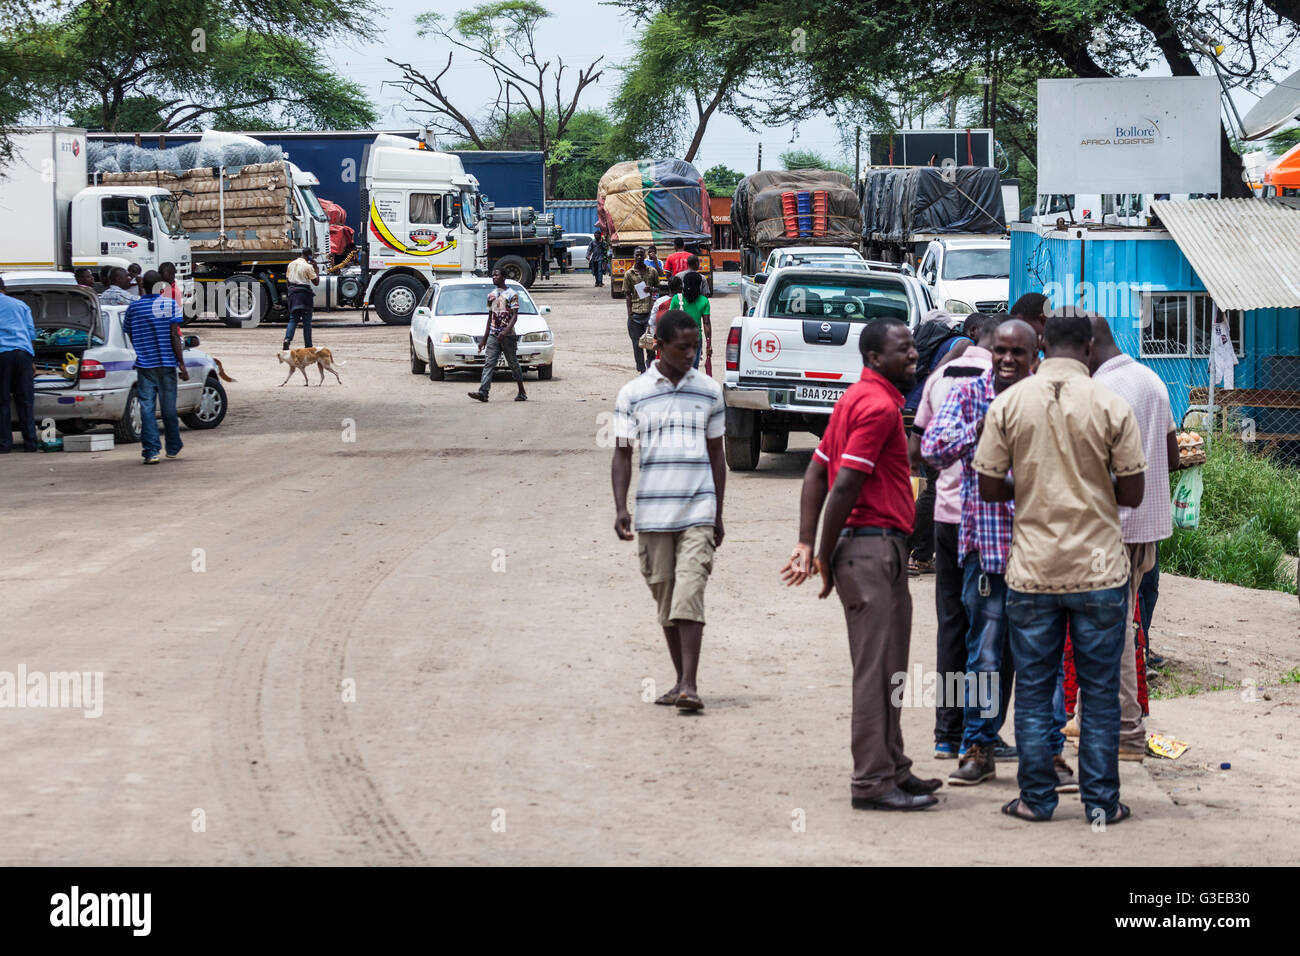 People and vehicles on the Zambian side of the Kazungula ferry to / from Botswana. - Stock Image